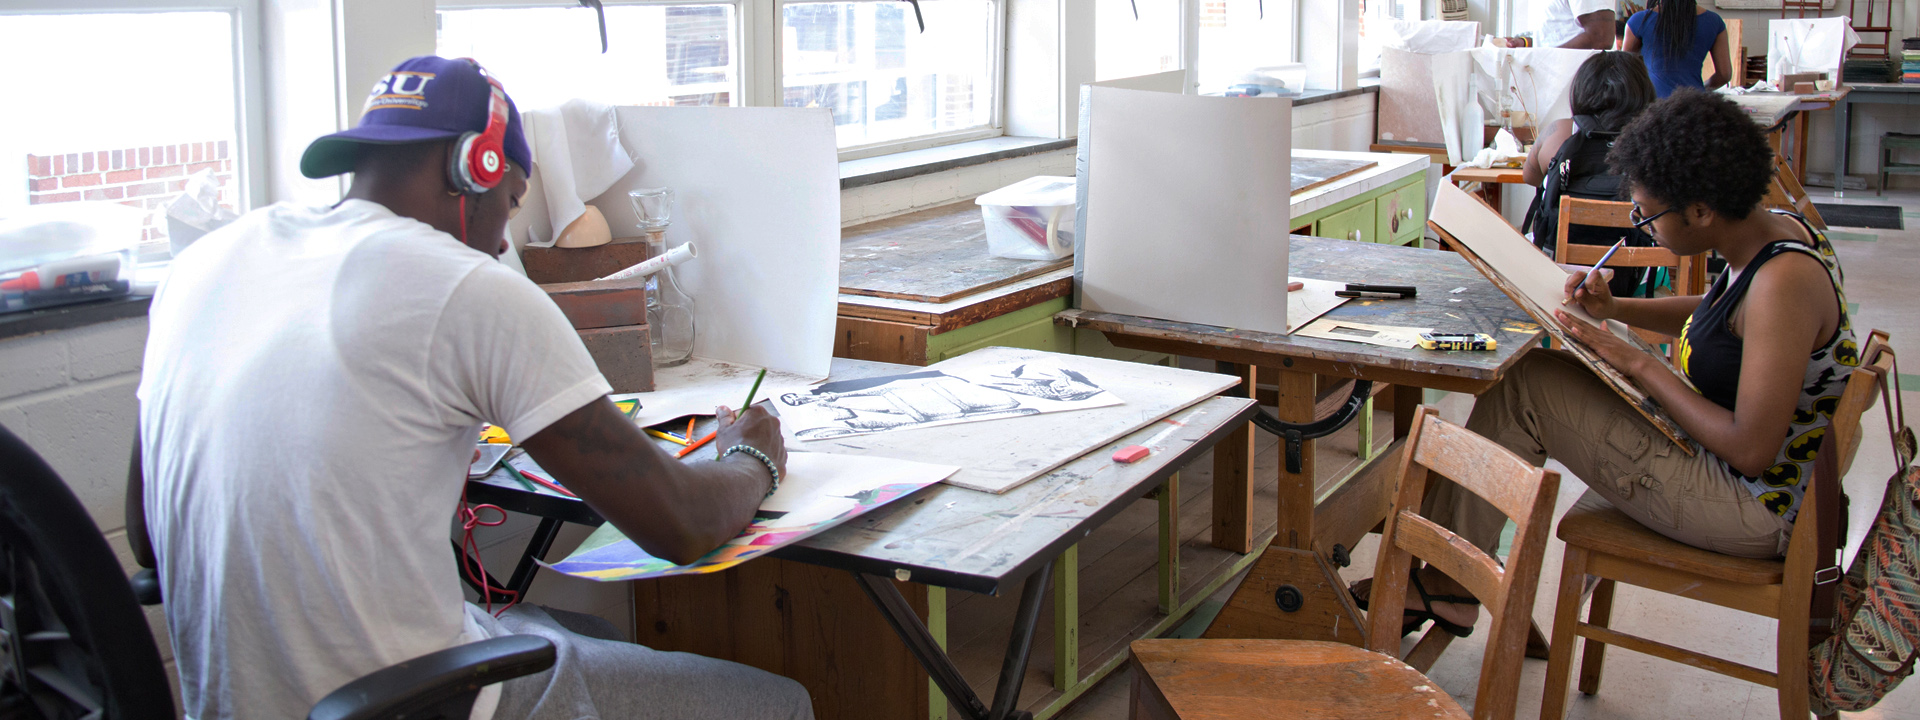 students creating artwork